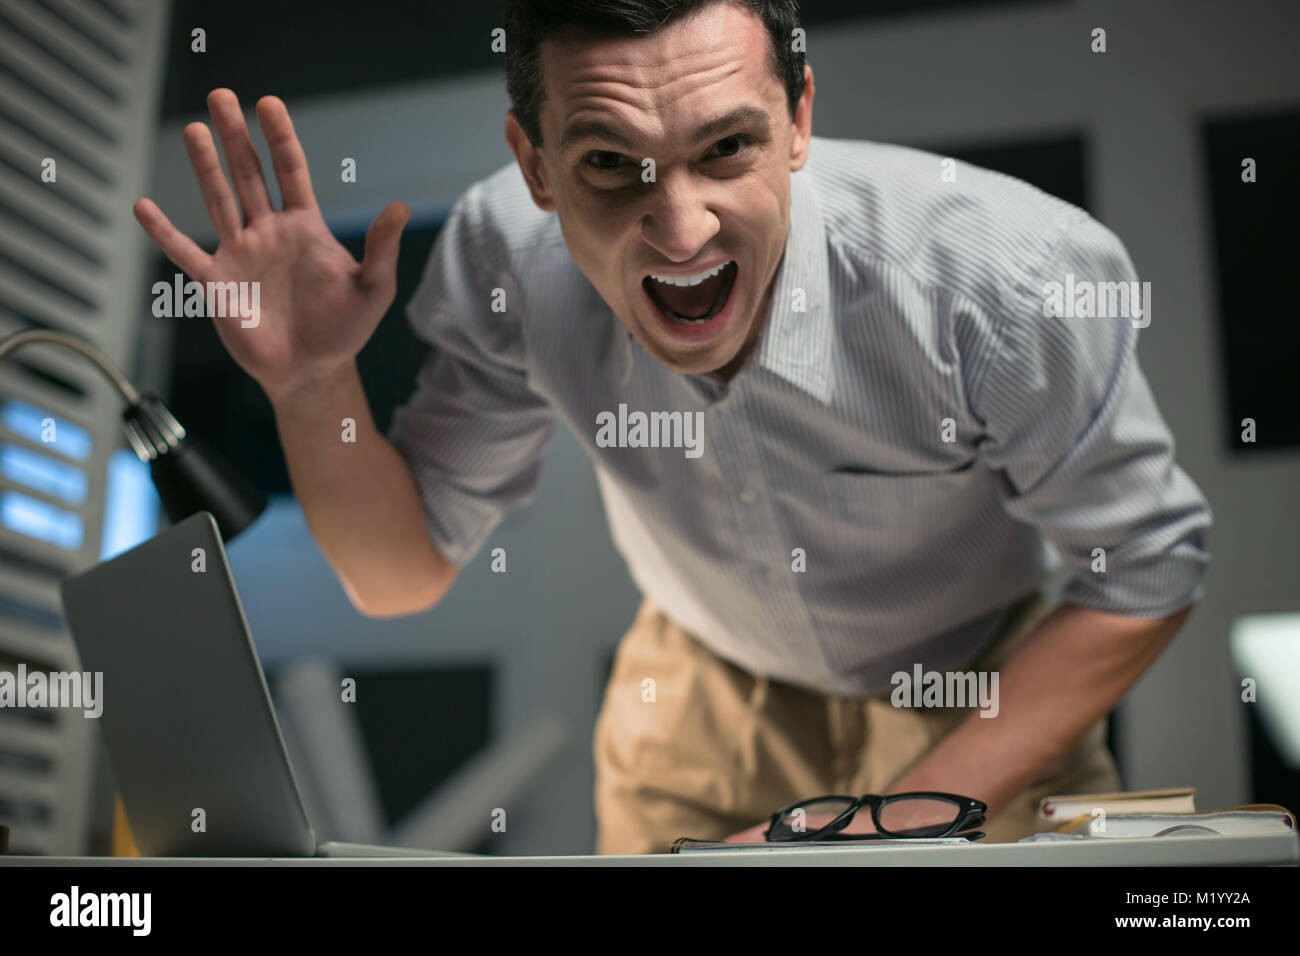 Mad male employee showing aggression - Stock Image